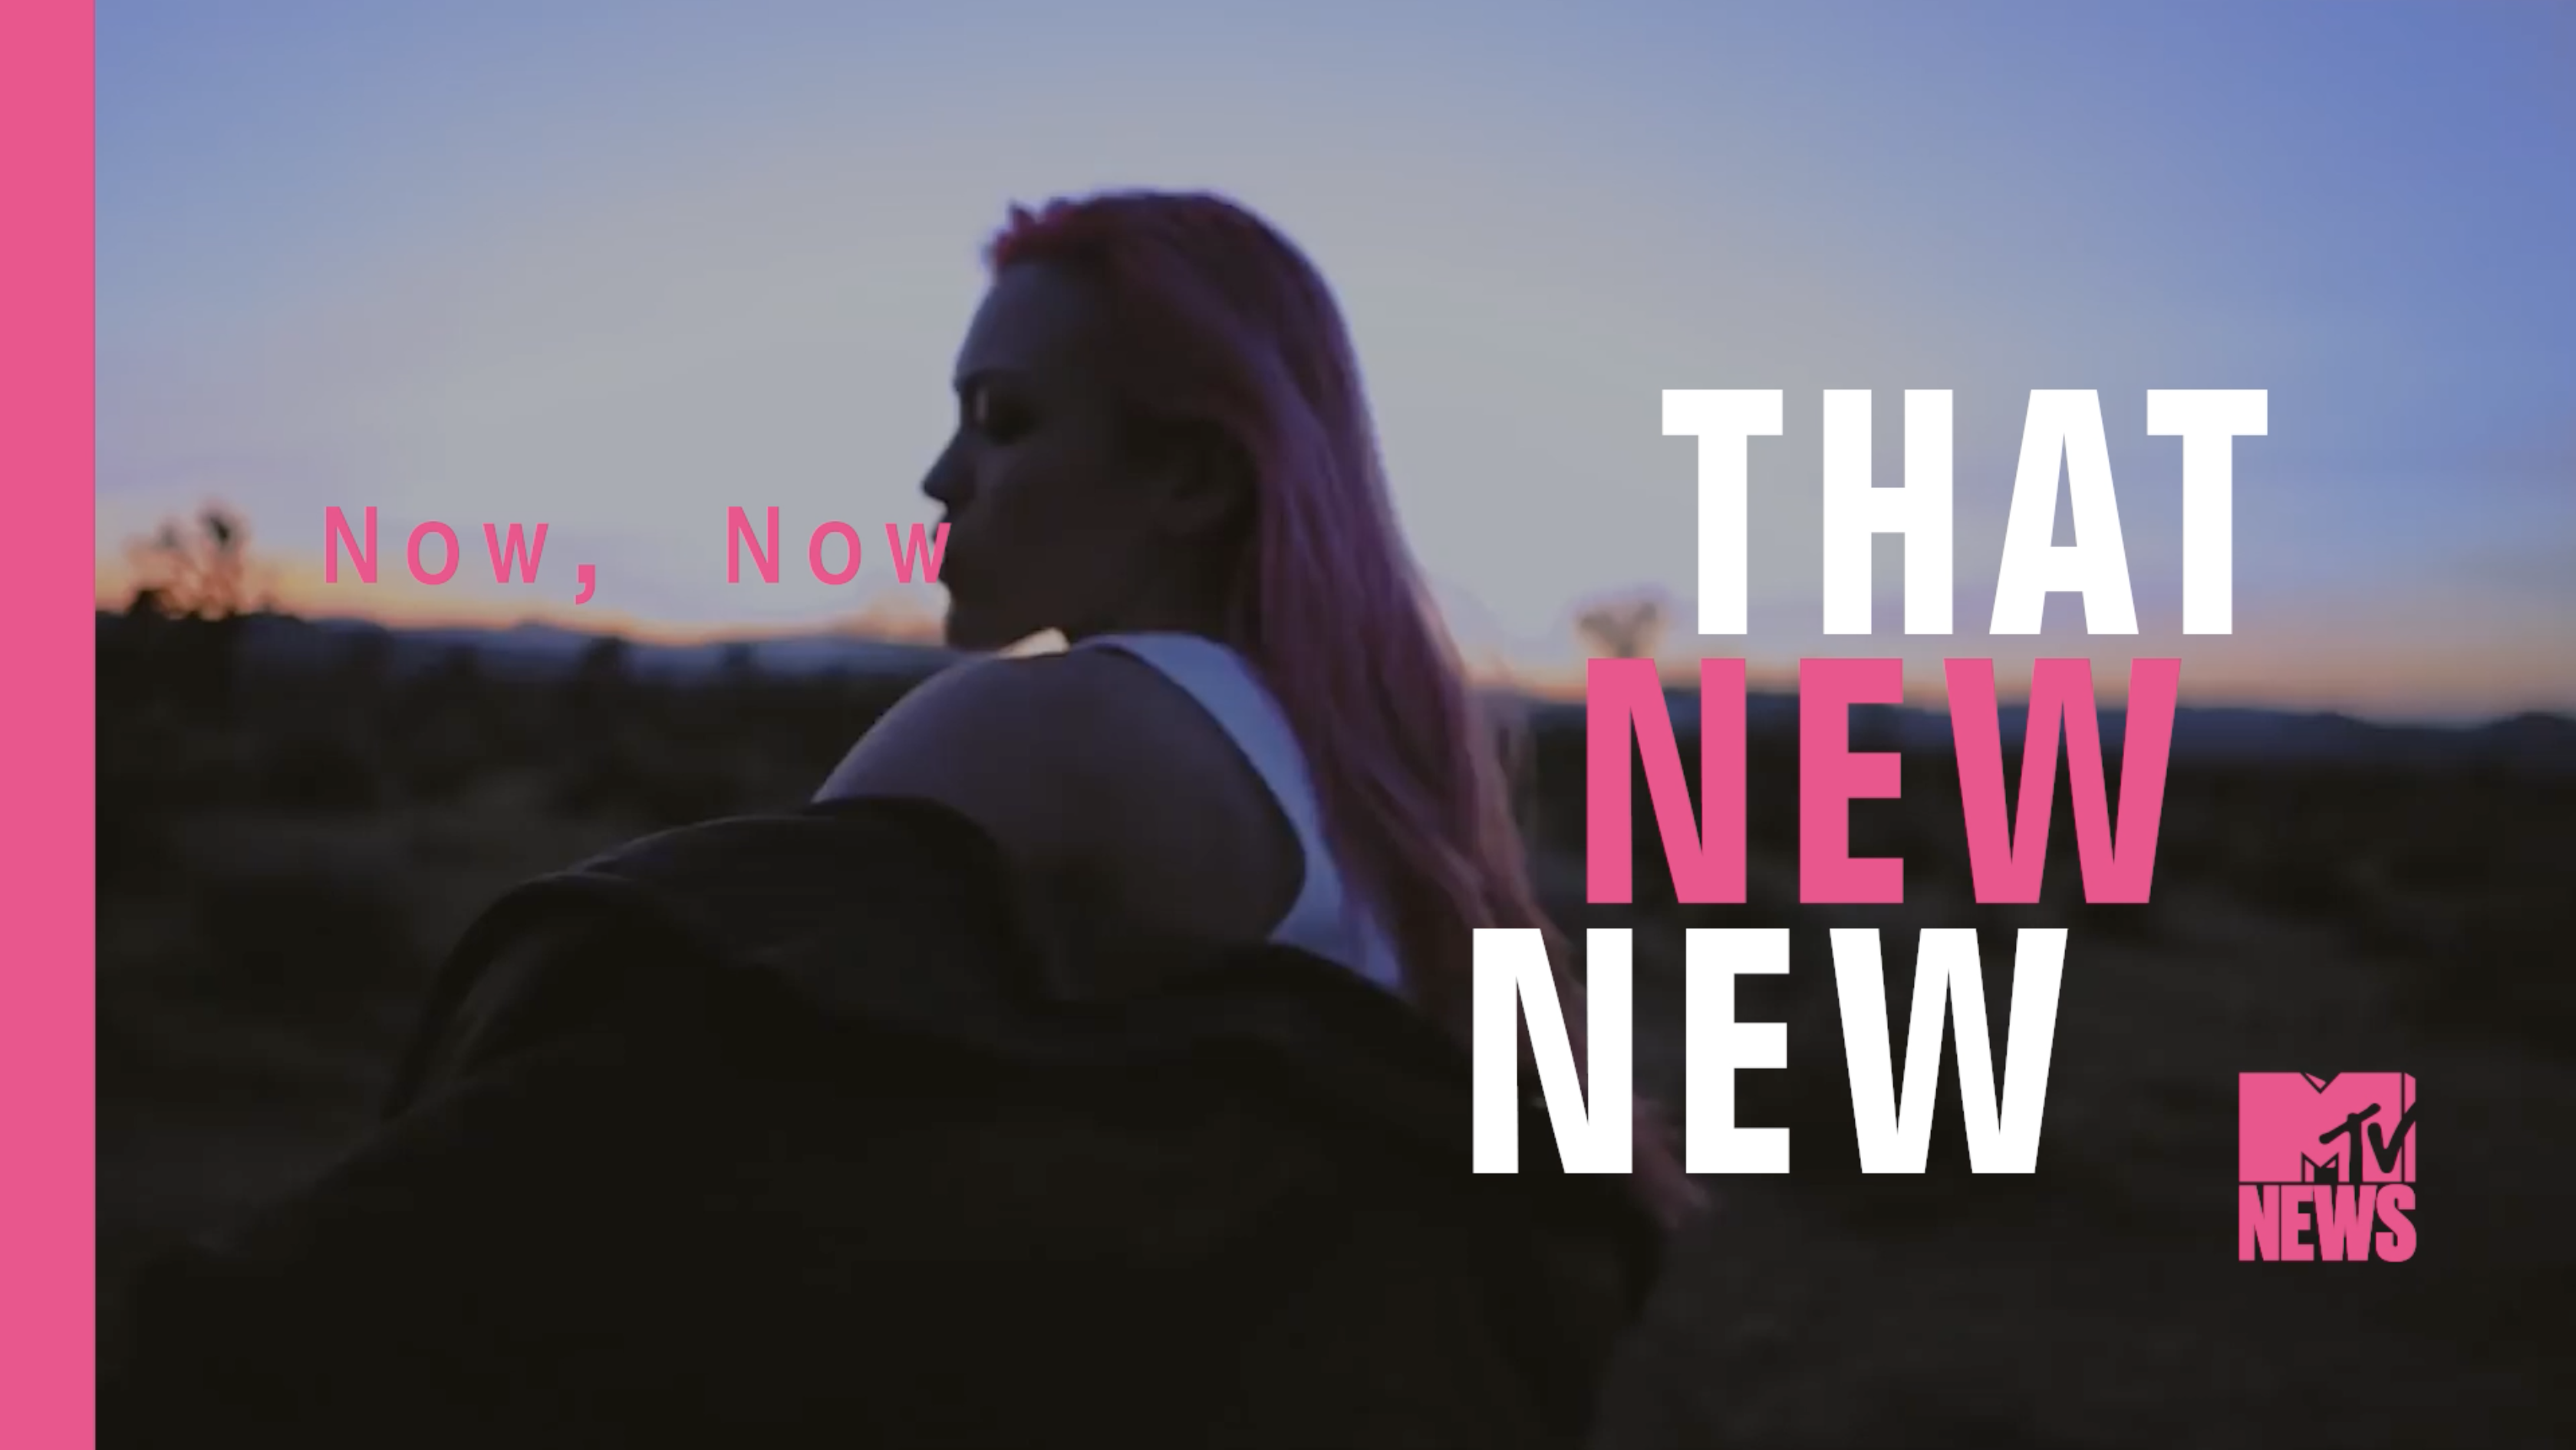 That New New: Now, Now